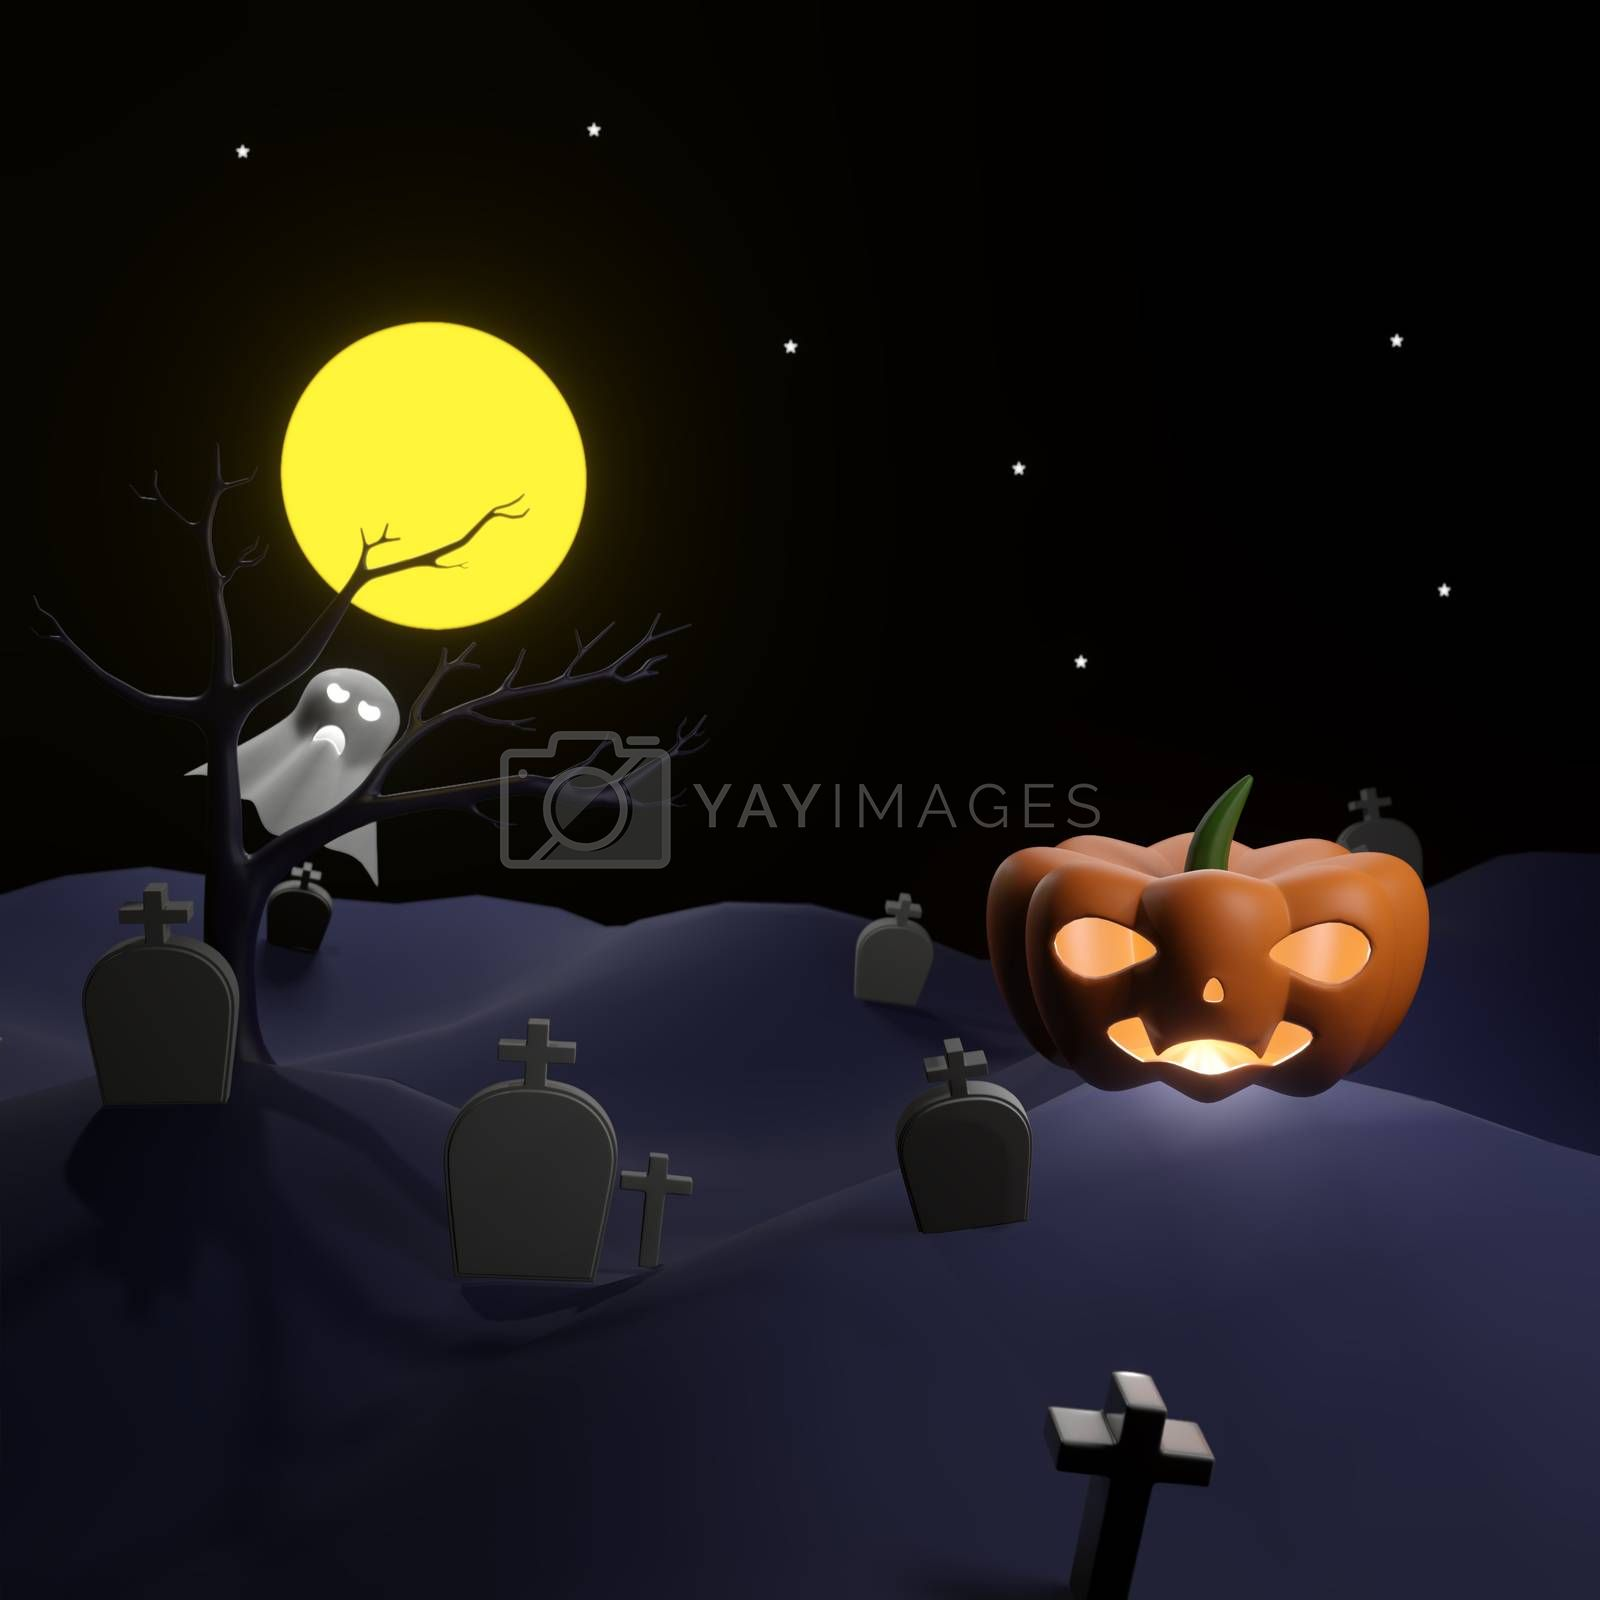 Royalty free image of Orange pumpkin on graveyard with full moon and pleiades by eaglesky